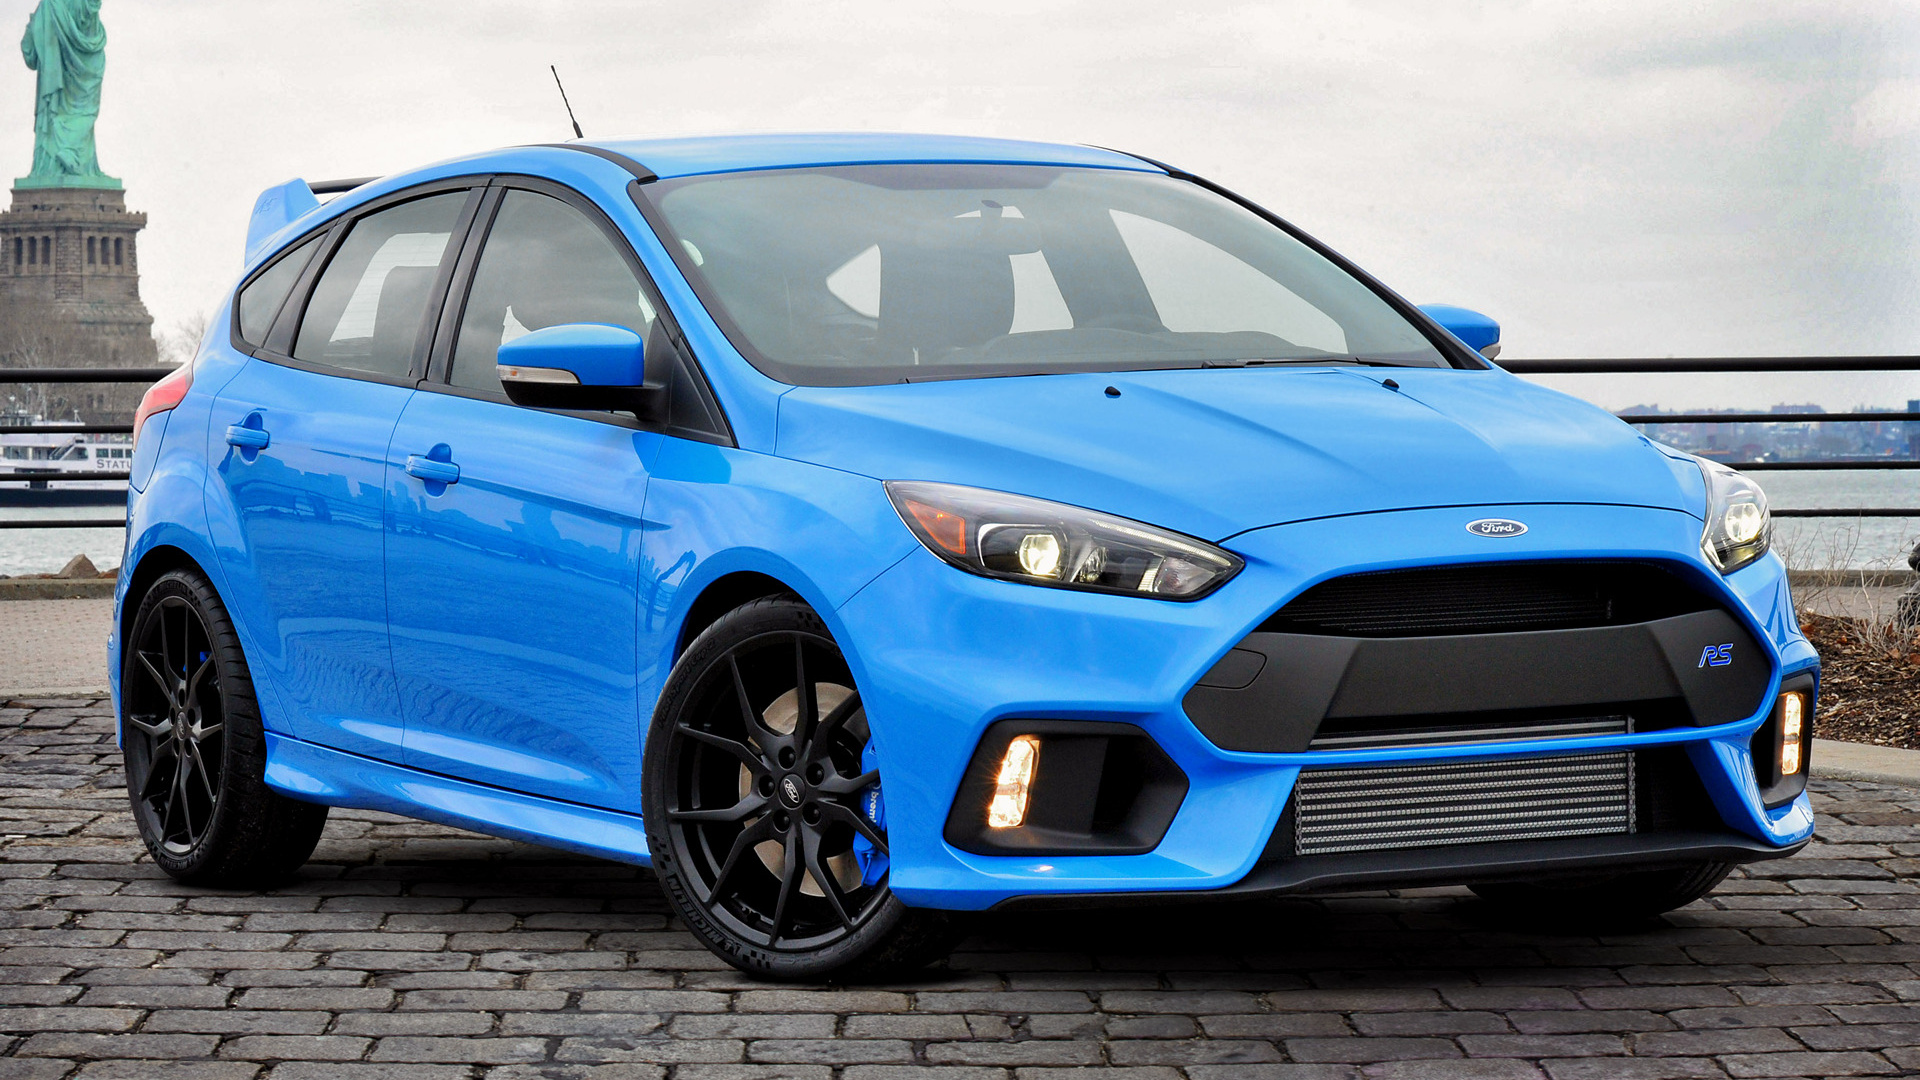 Ford Focus RS (2016) US Wallpapers and HD Images - Car Pixel